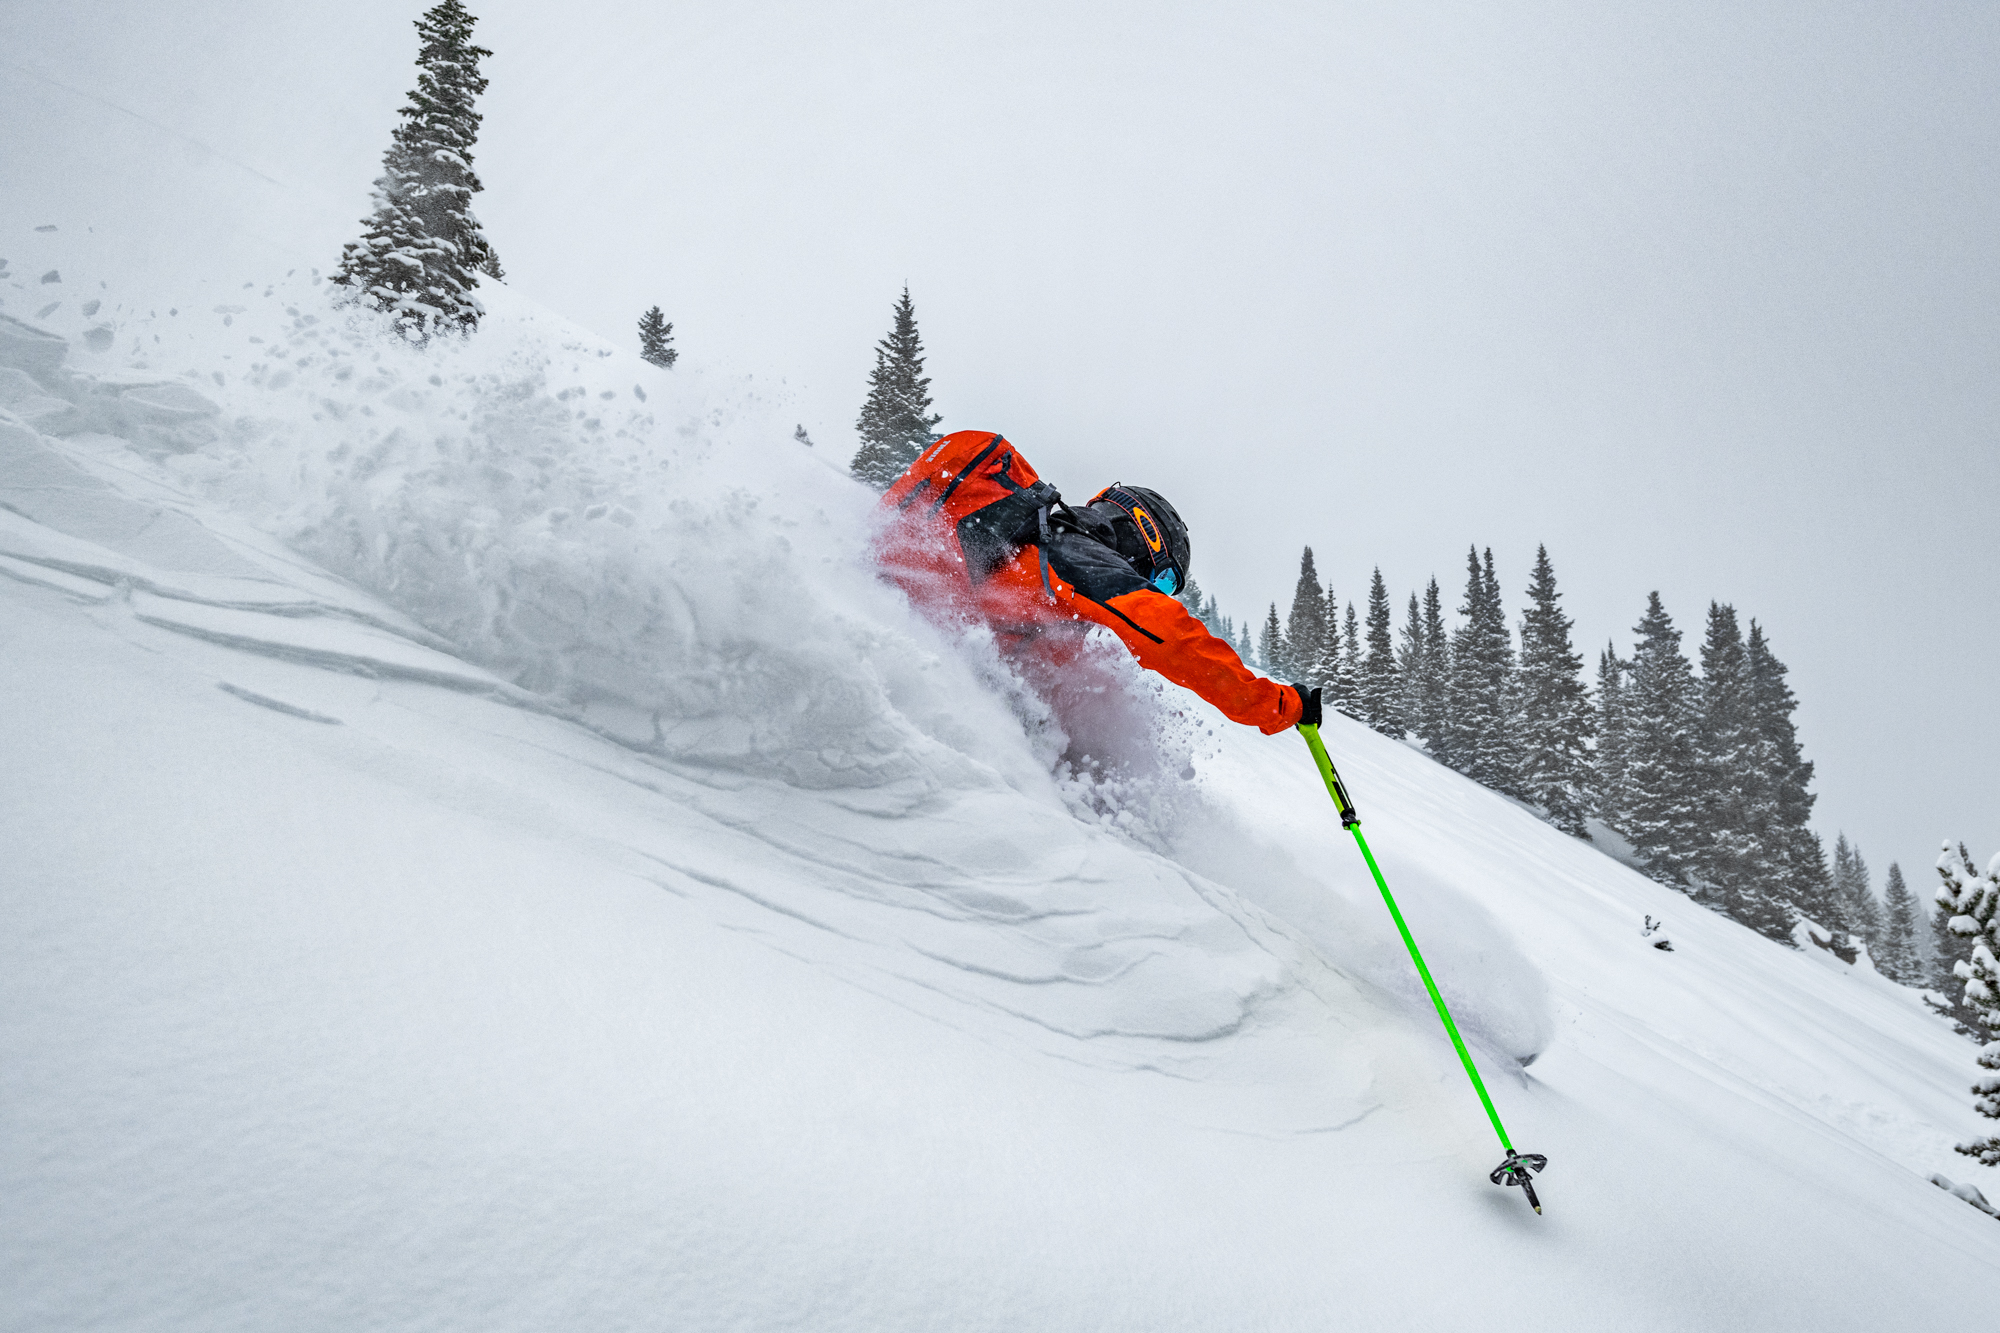 Nat Houston Skiing Berthoud Pass - Greg Mionske - Advertising and Editorial Photographer in Denver